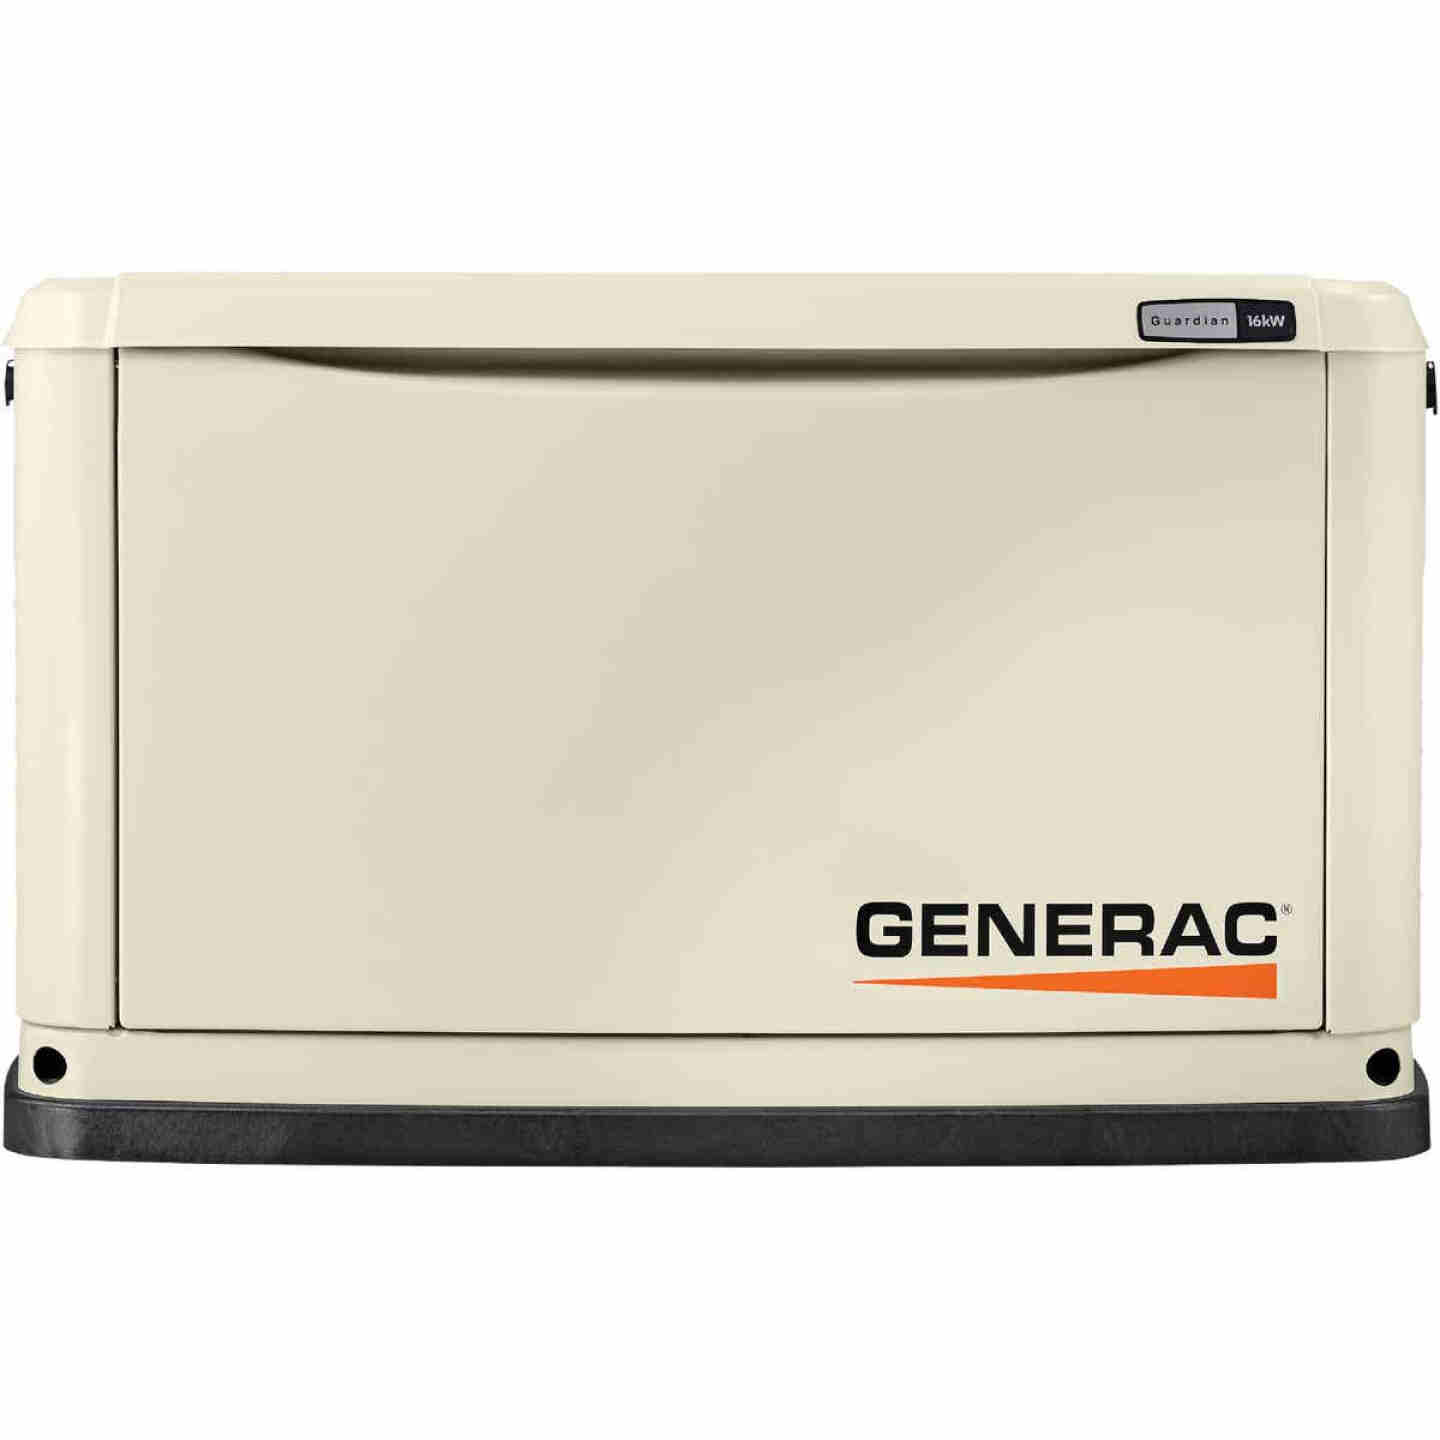 Generac Guardian WiFi 16,000W Natural Gas/LP Home Standby Generator Home Back Up Generator with Smart Switch Image 4